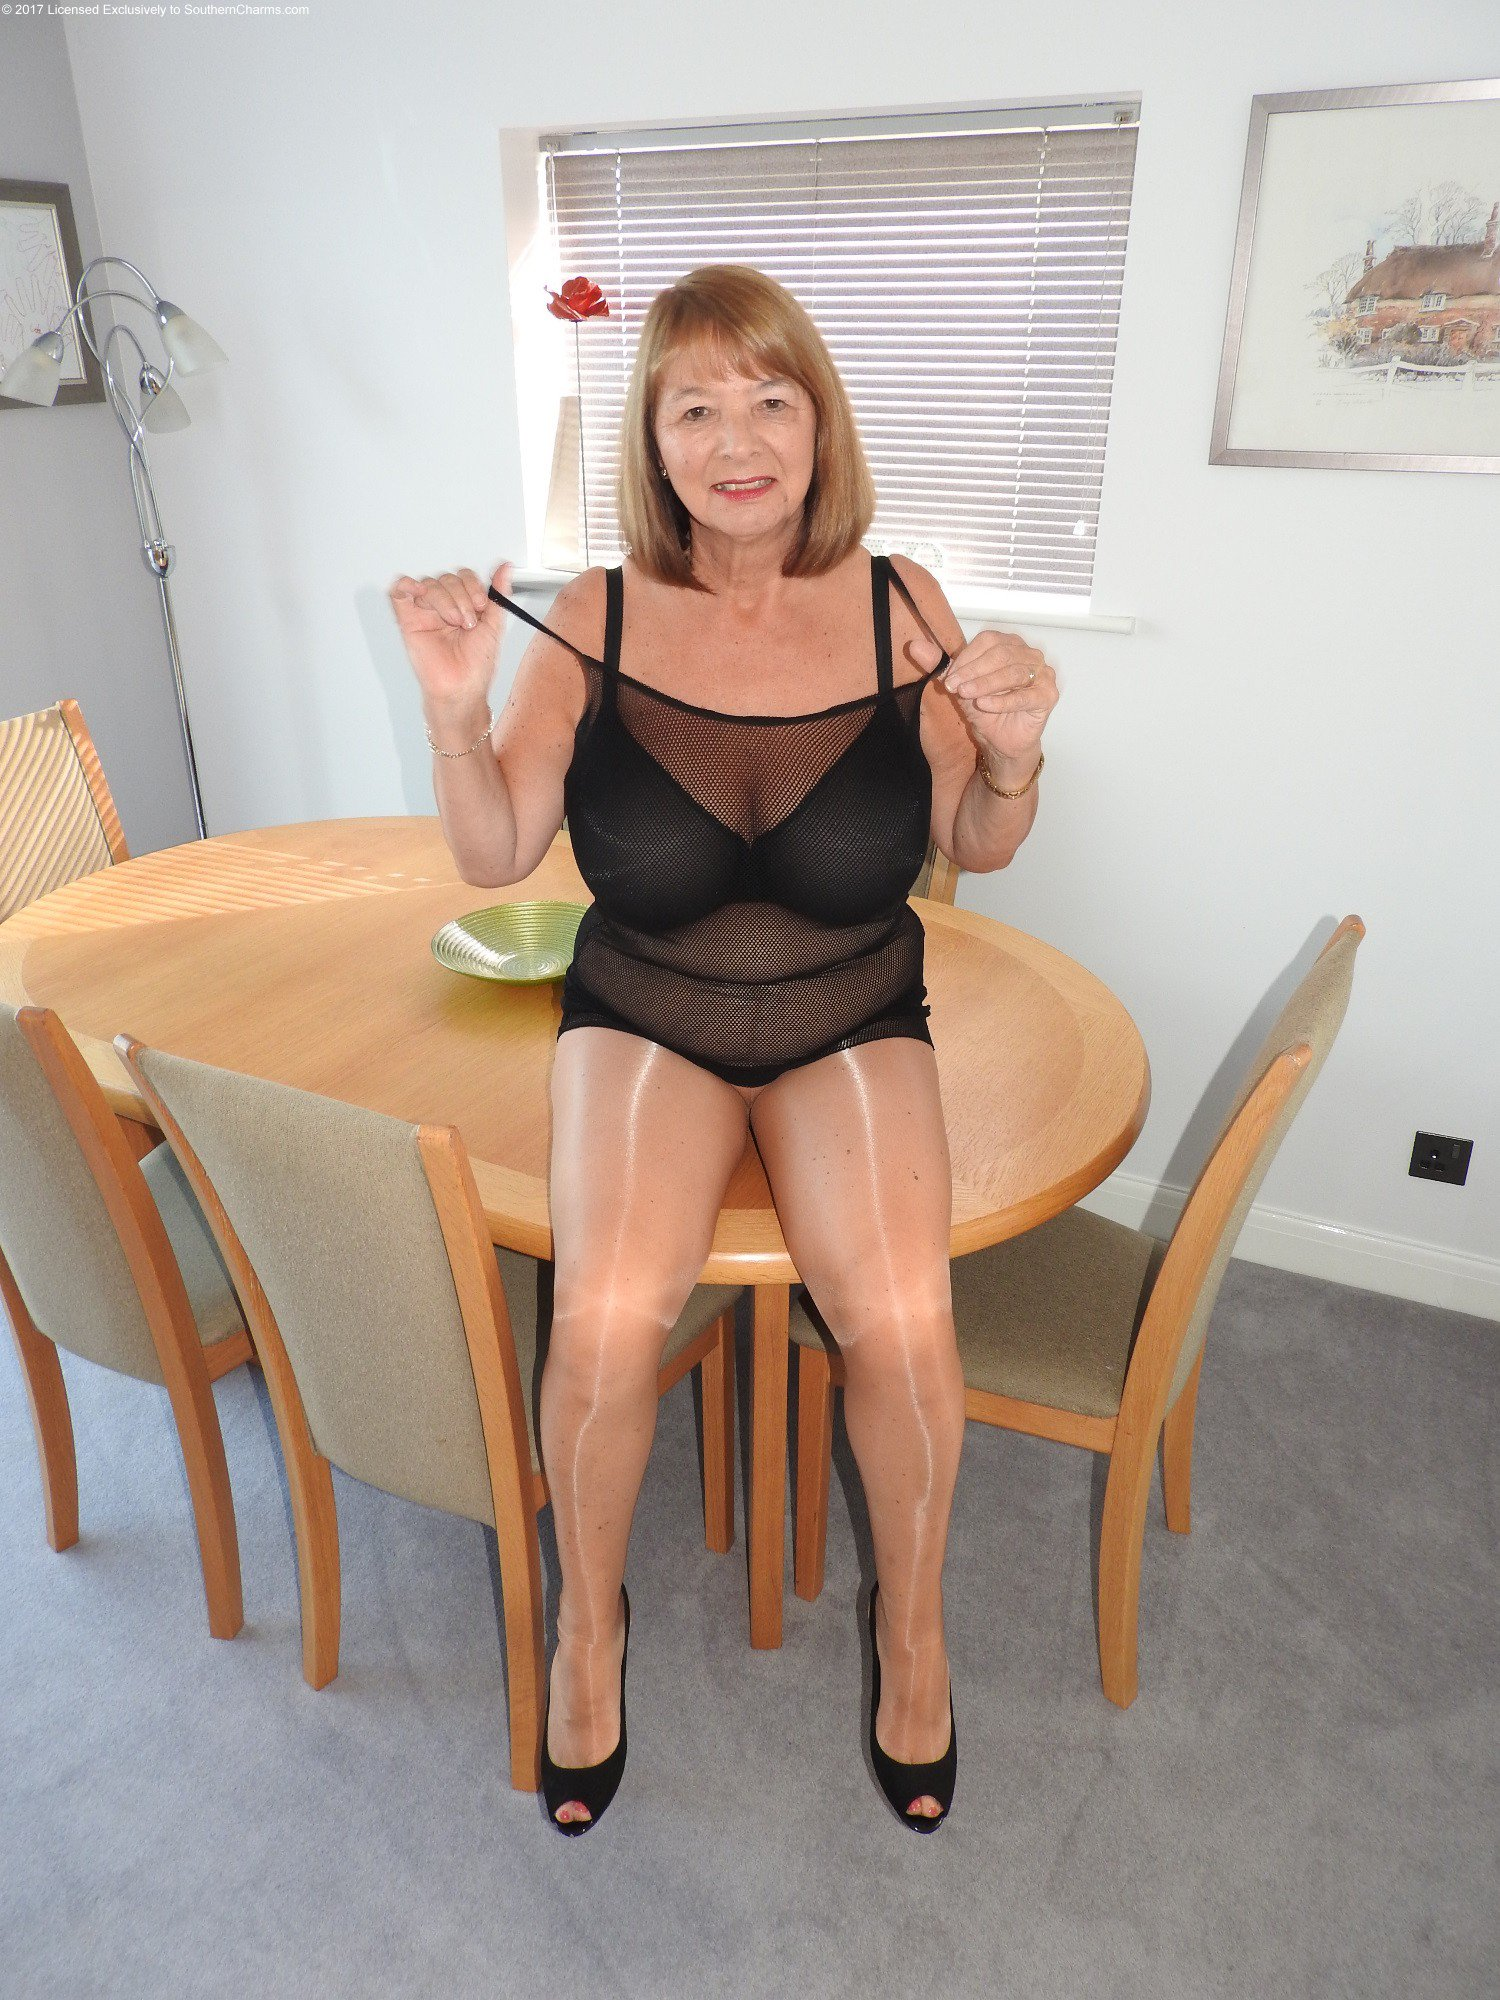 Southern Charms On Twitter Cum Join A Mature Woman For A Little Fun Https T Co Nuvbc3ohbp Southerncharms